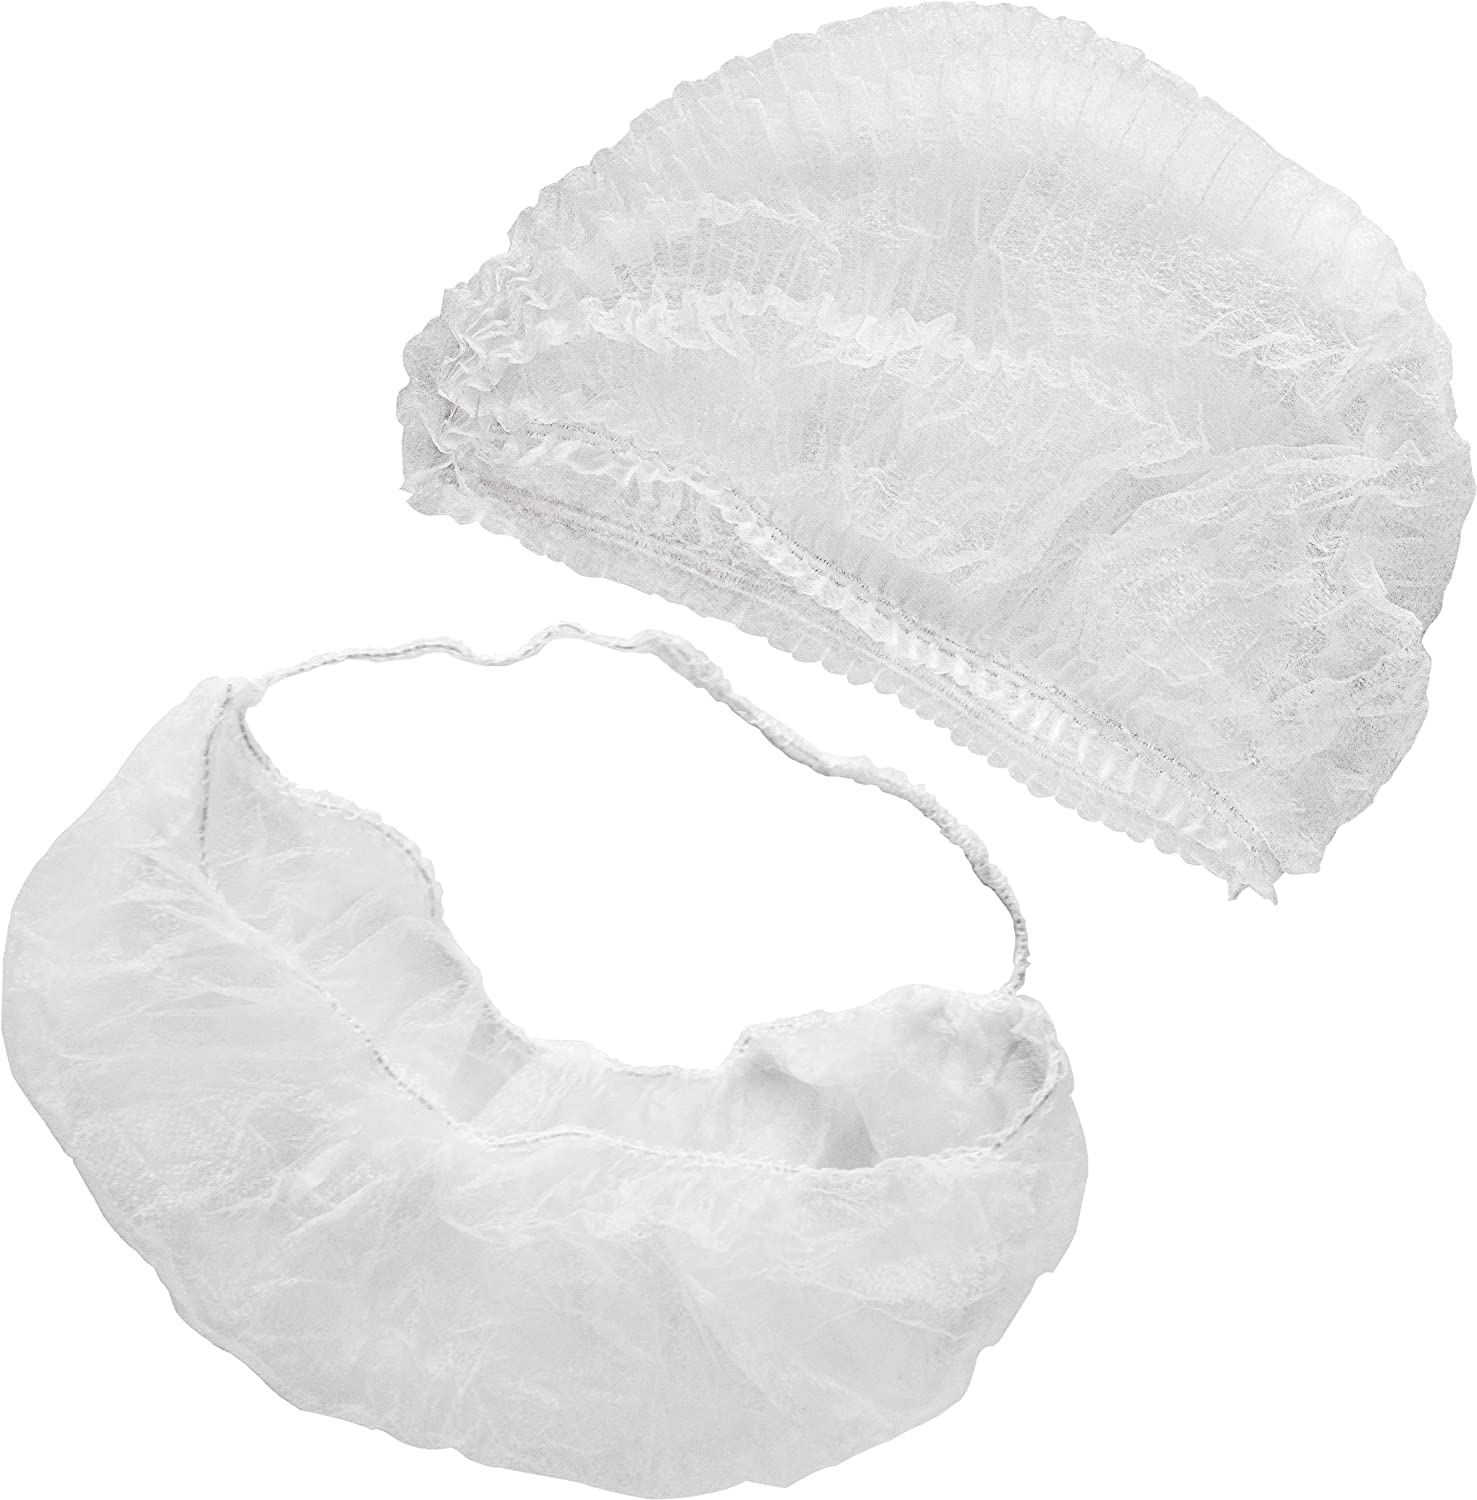 [100 Hairnet and 100 Beard Net Pack] 21 Inch Bouffant Hair Nets and Beard Protector Mask - Disposable White Latex Free Head Cap and Face Cover for Men Women Surgical Hospital, Cooking and Food Service